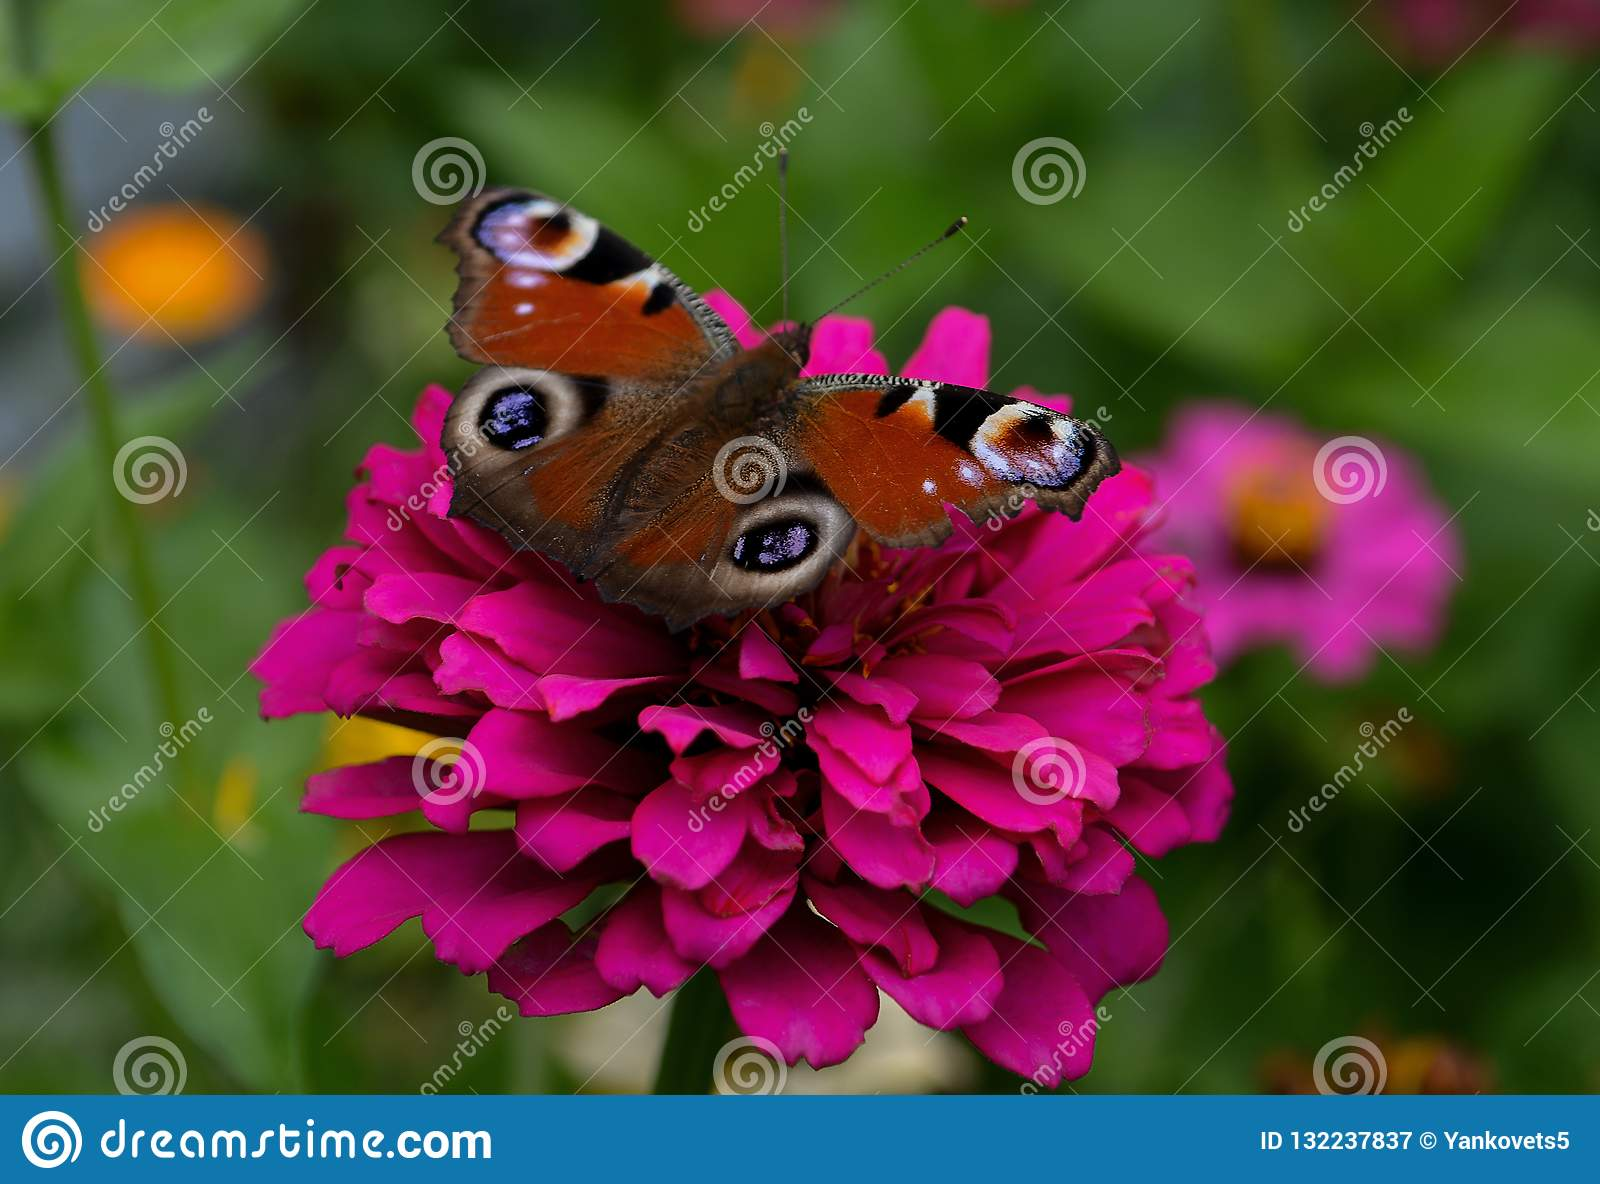 A butterfly with a beautiful bright color is sitting on a pink flower against a colored background of a garden